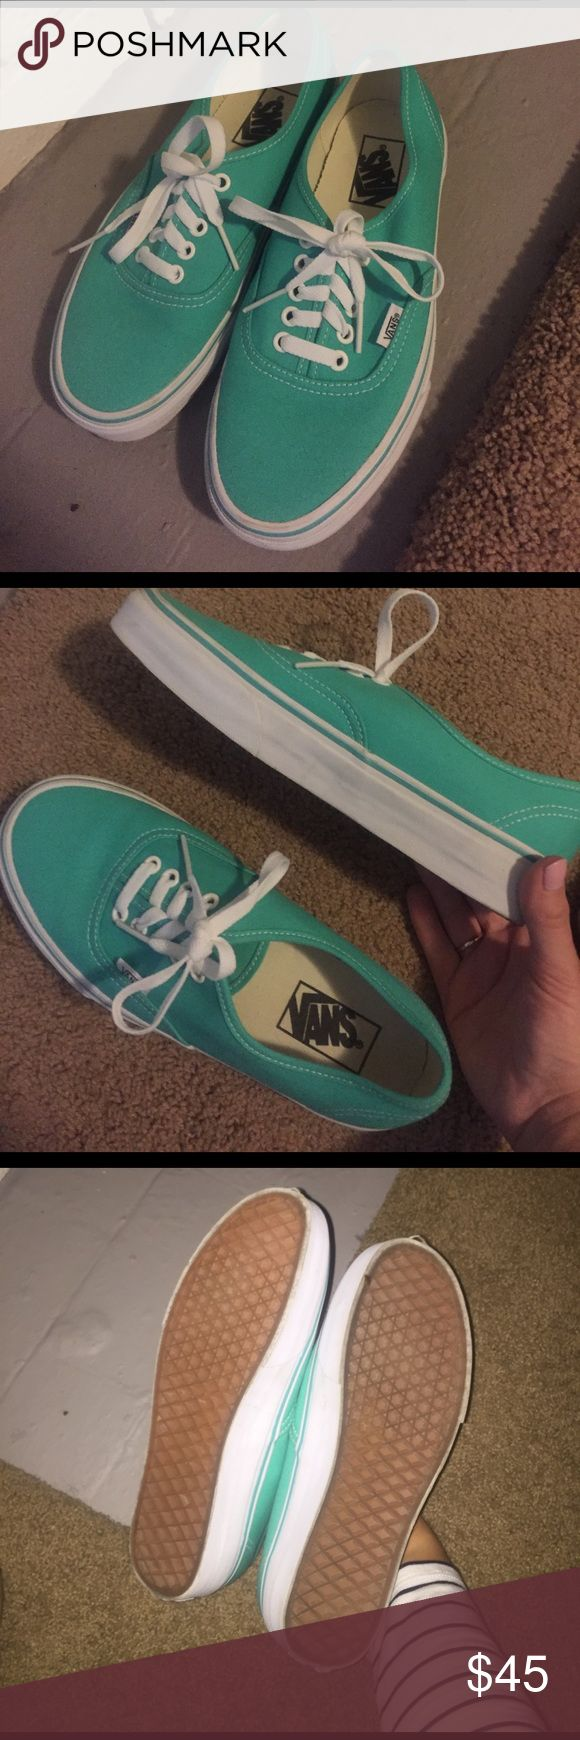 LIKE NEW teal Vans Super cute teal and white Vans, perfect for spring and summer. Never worn- Women's size 8 Vans Shoes